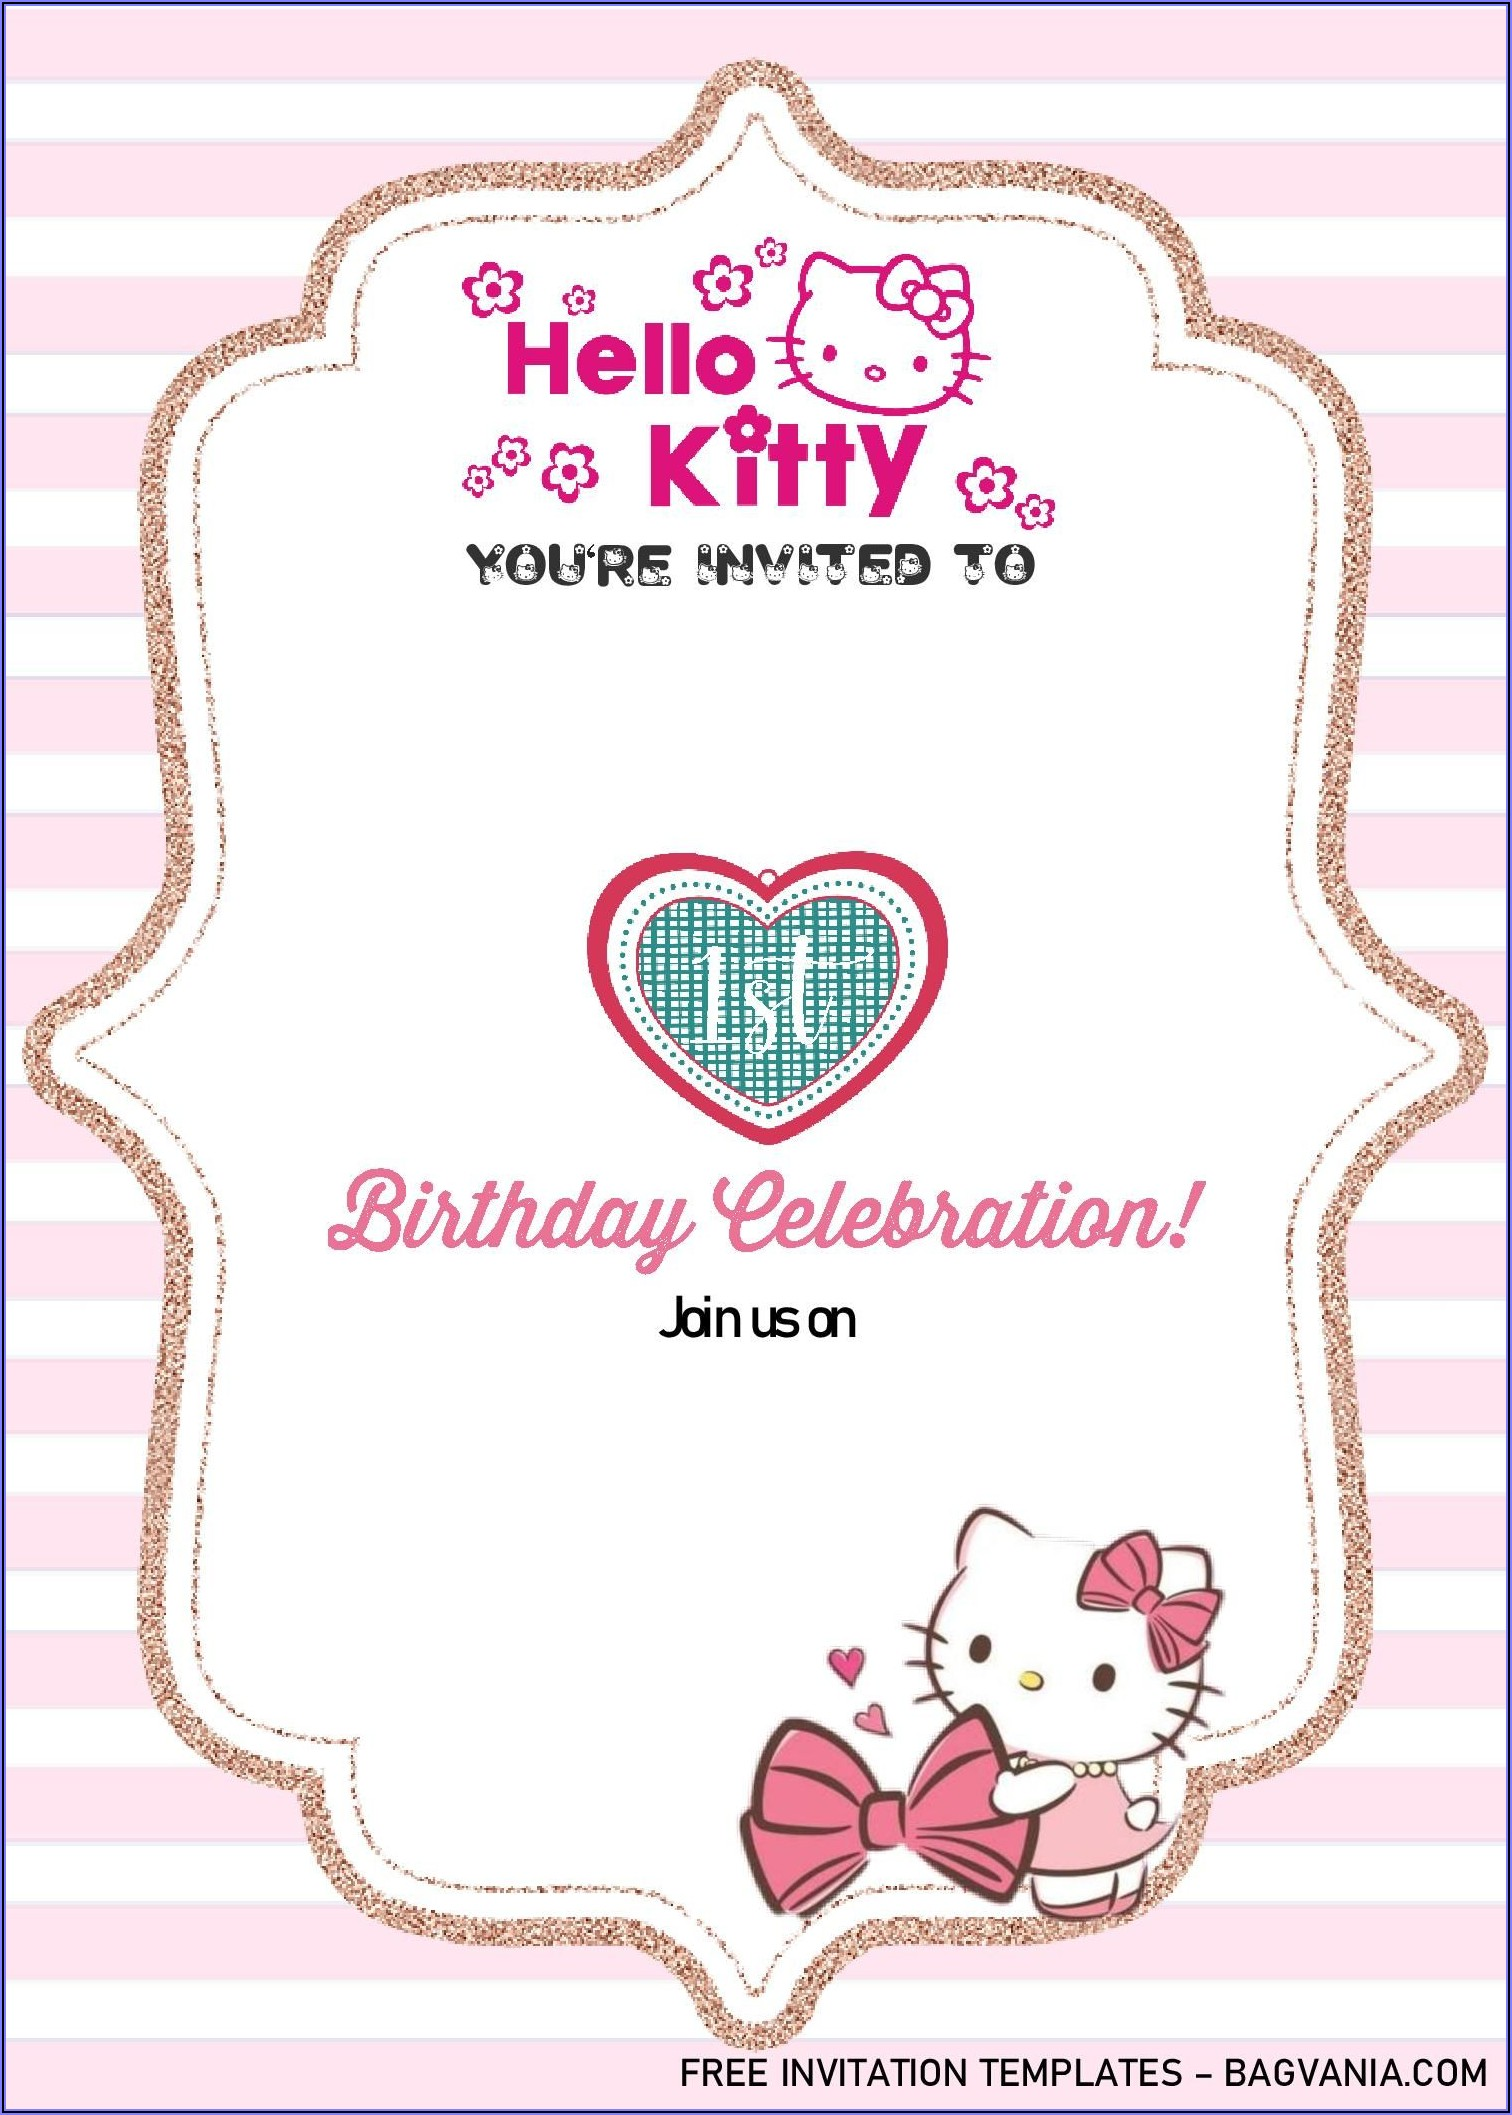 Hello Kitty Editable Invitation Templates